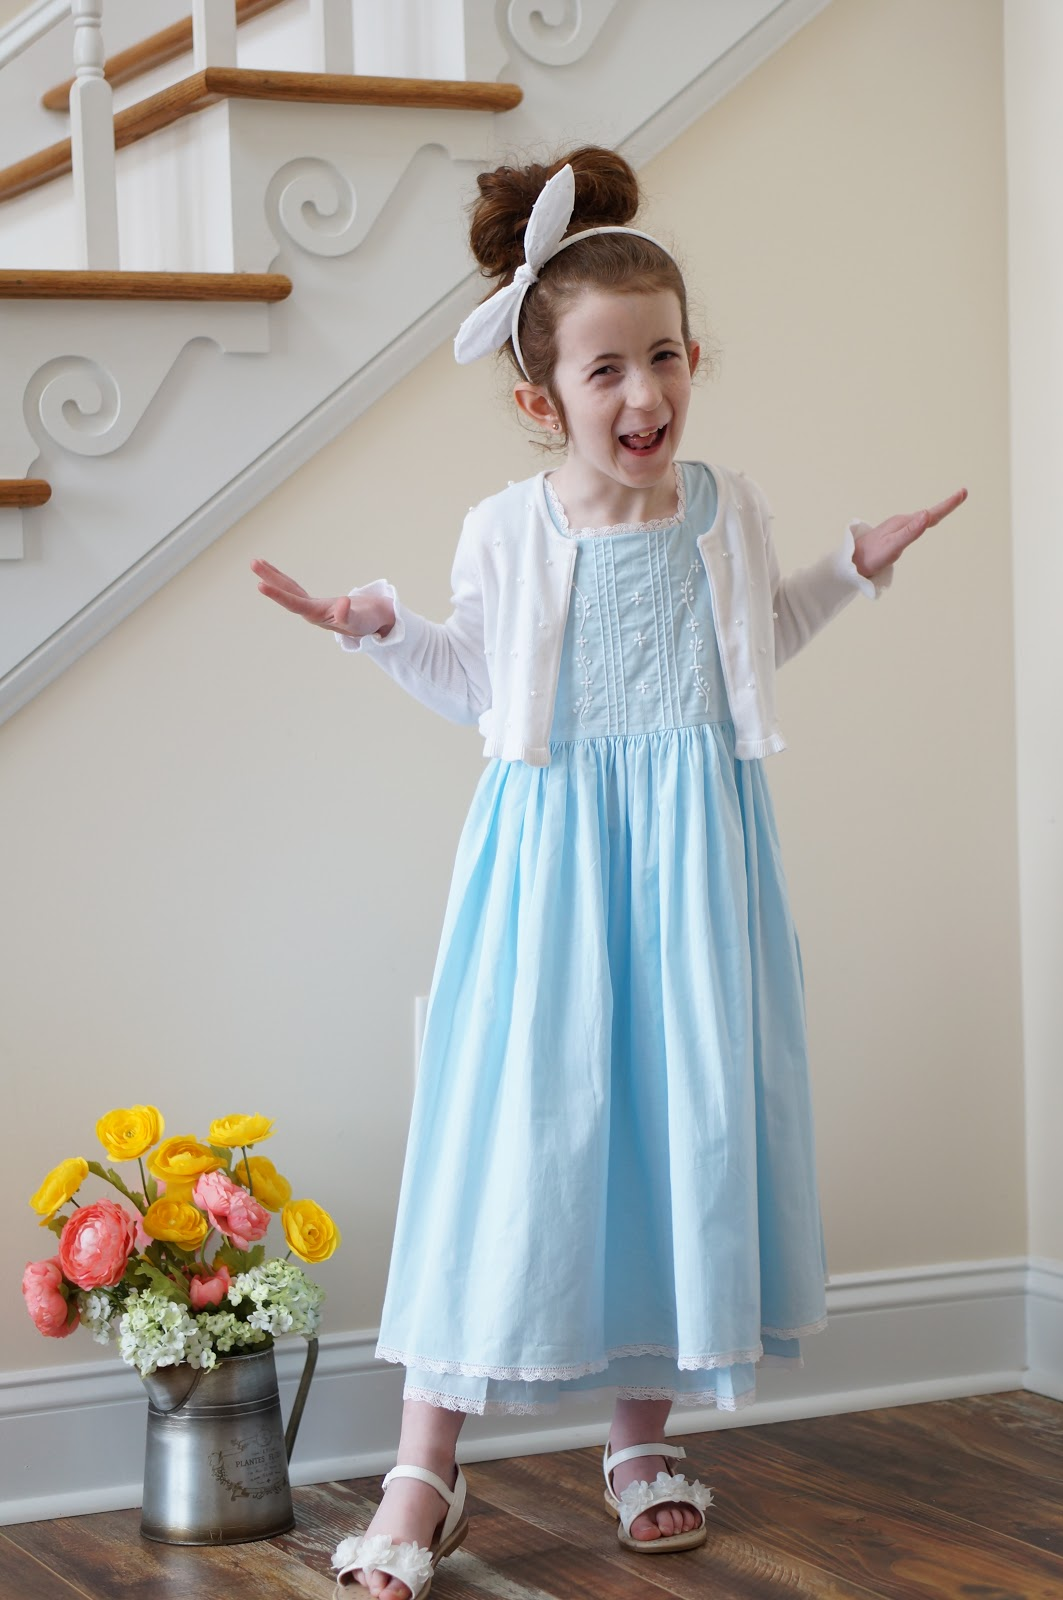 Popular North Carolina style blogger shares the Cape Cod dress from Strasburg Children.  Read more here!